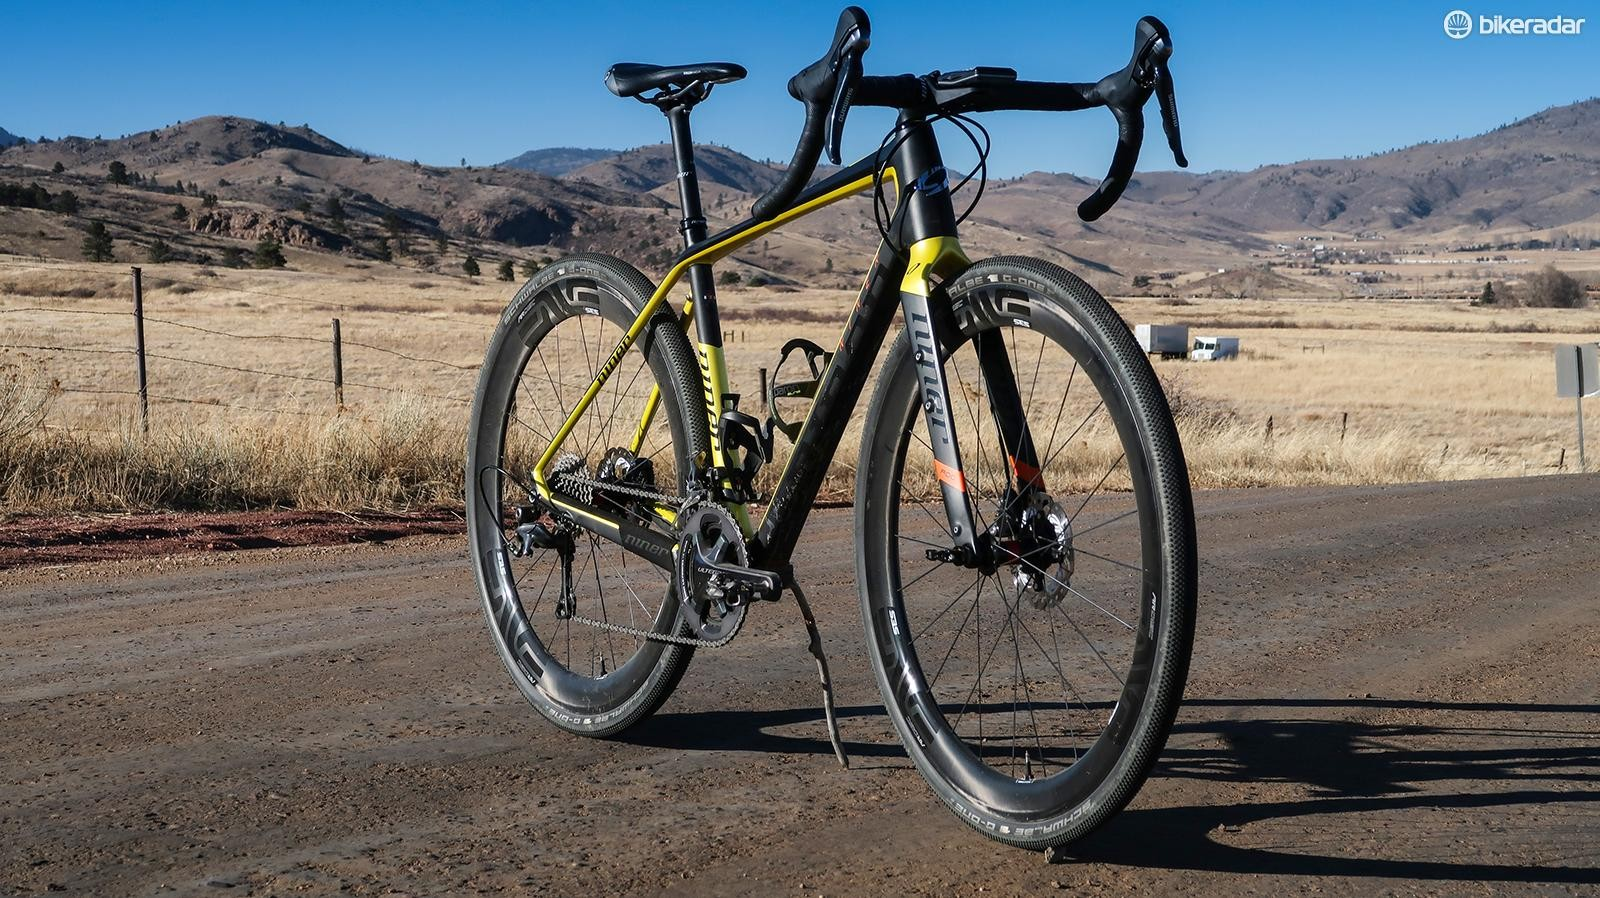 Niner's new gravel racer, the RLT 9 RDO